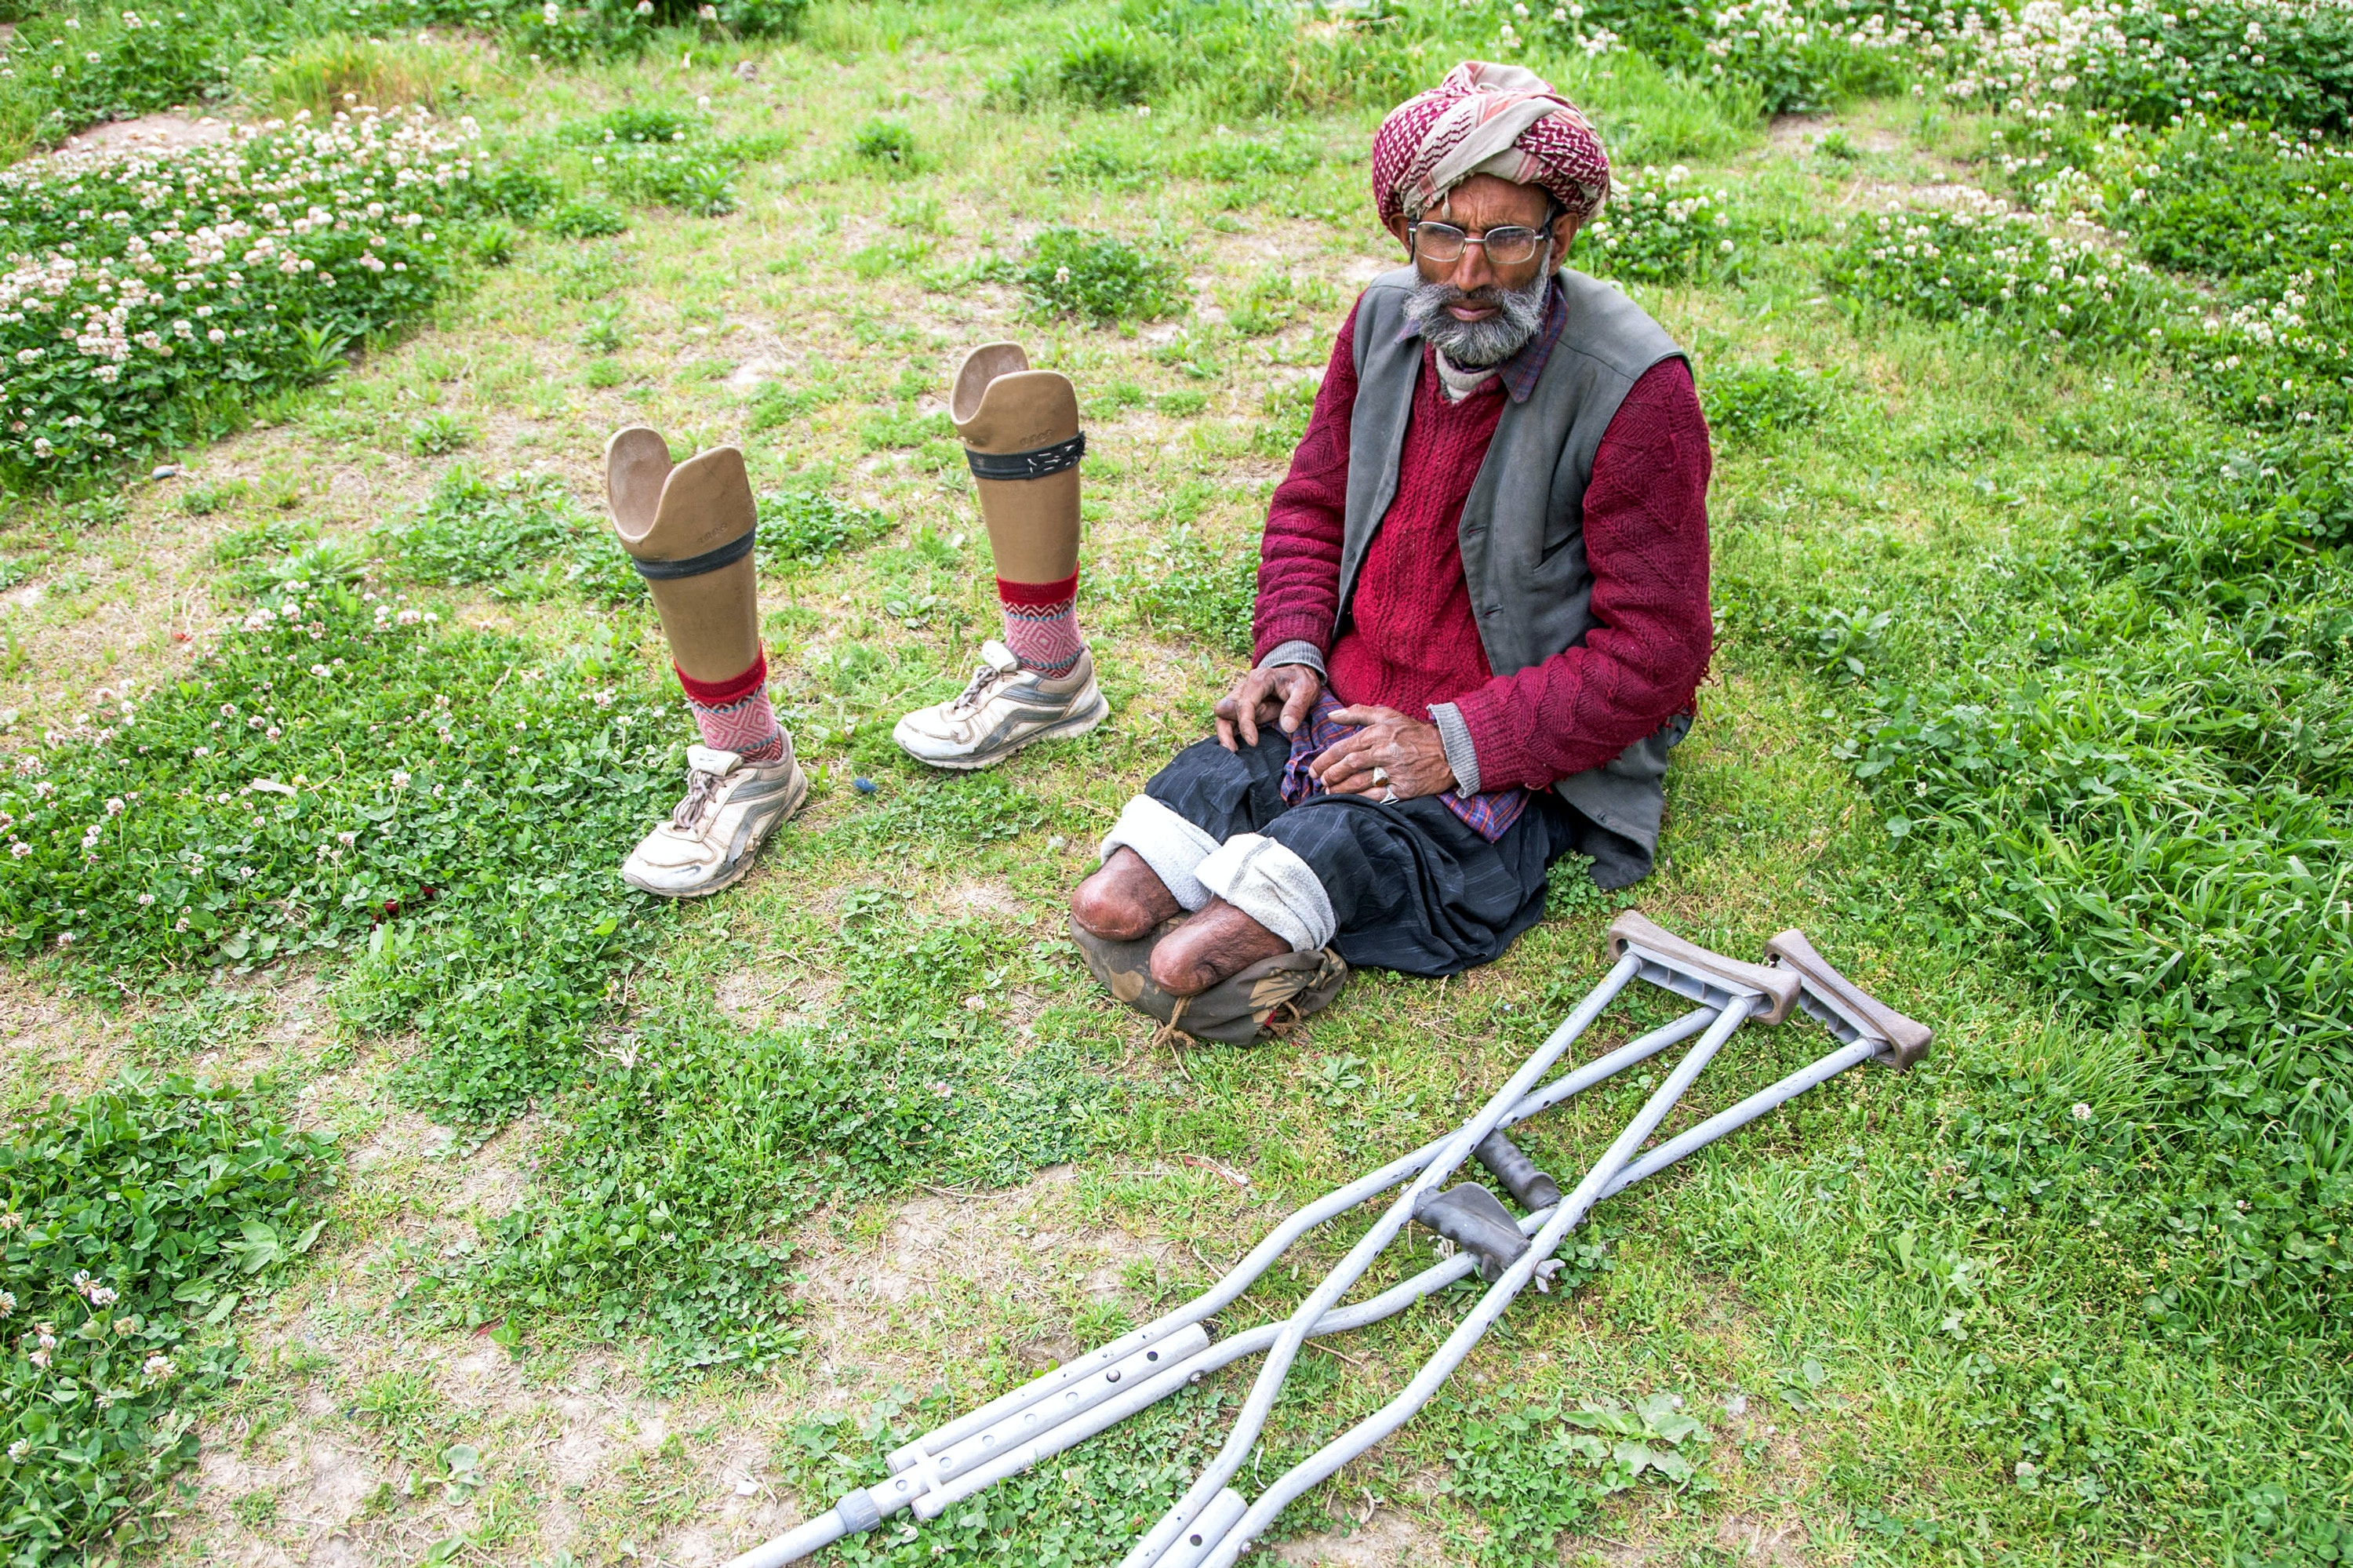 SRINAGAR, KASHMIR, INDIA - AUGUST 08: Qalander Khatana, a torture victim poses with his amputated and prosthetic legs on August 8, 2016 in Srinagar, the summer capital of Indian administered Kashmir, India. 45-year old Qalendar Khatana from Kalaroos area of Kupwara district says he was picked up from his home by the 36 Batallion of India's Border Security Force (BSF) on December 15, 1990. ' They said we just want to ask you some questions,' Qalendar says . At a nearby BSF camp, Qalendar says he was tortured for two days. ' The BSF accused me of sheltering militants. I was just a farmer. I didn't know any militants but they wouldn't believe me,' he says. After six months of continuous torture including severe beating and electric shocks to genitals and other body parts in different BSF camps, Qalendar says he was shifted to the notorious ' Papa 2' interrogation center in Srinagar, where the BSF hacked off both his legs. He was then shifted to the Kot Balwal Jail in Jammu, where he 'rotted for the next four years, without any medical care.' Qalendar says due to the torture he has partially lost his eyesight and can barely sleep at night. (Photo by Yawar Nazir/Getty Images)